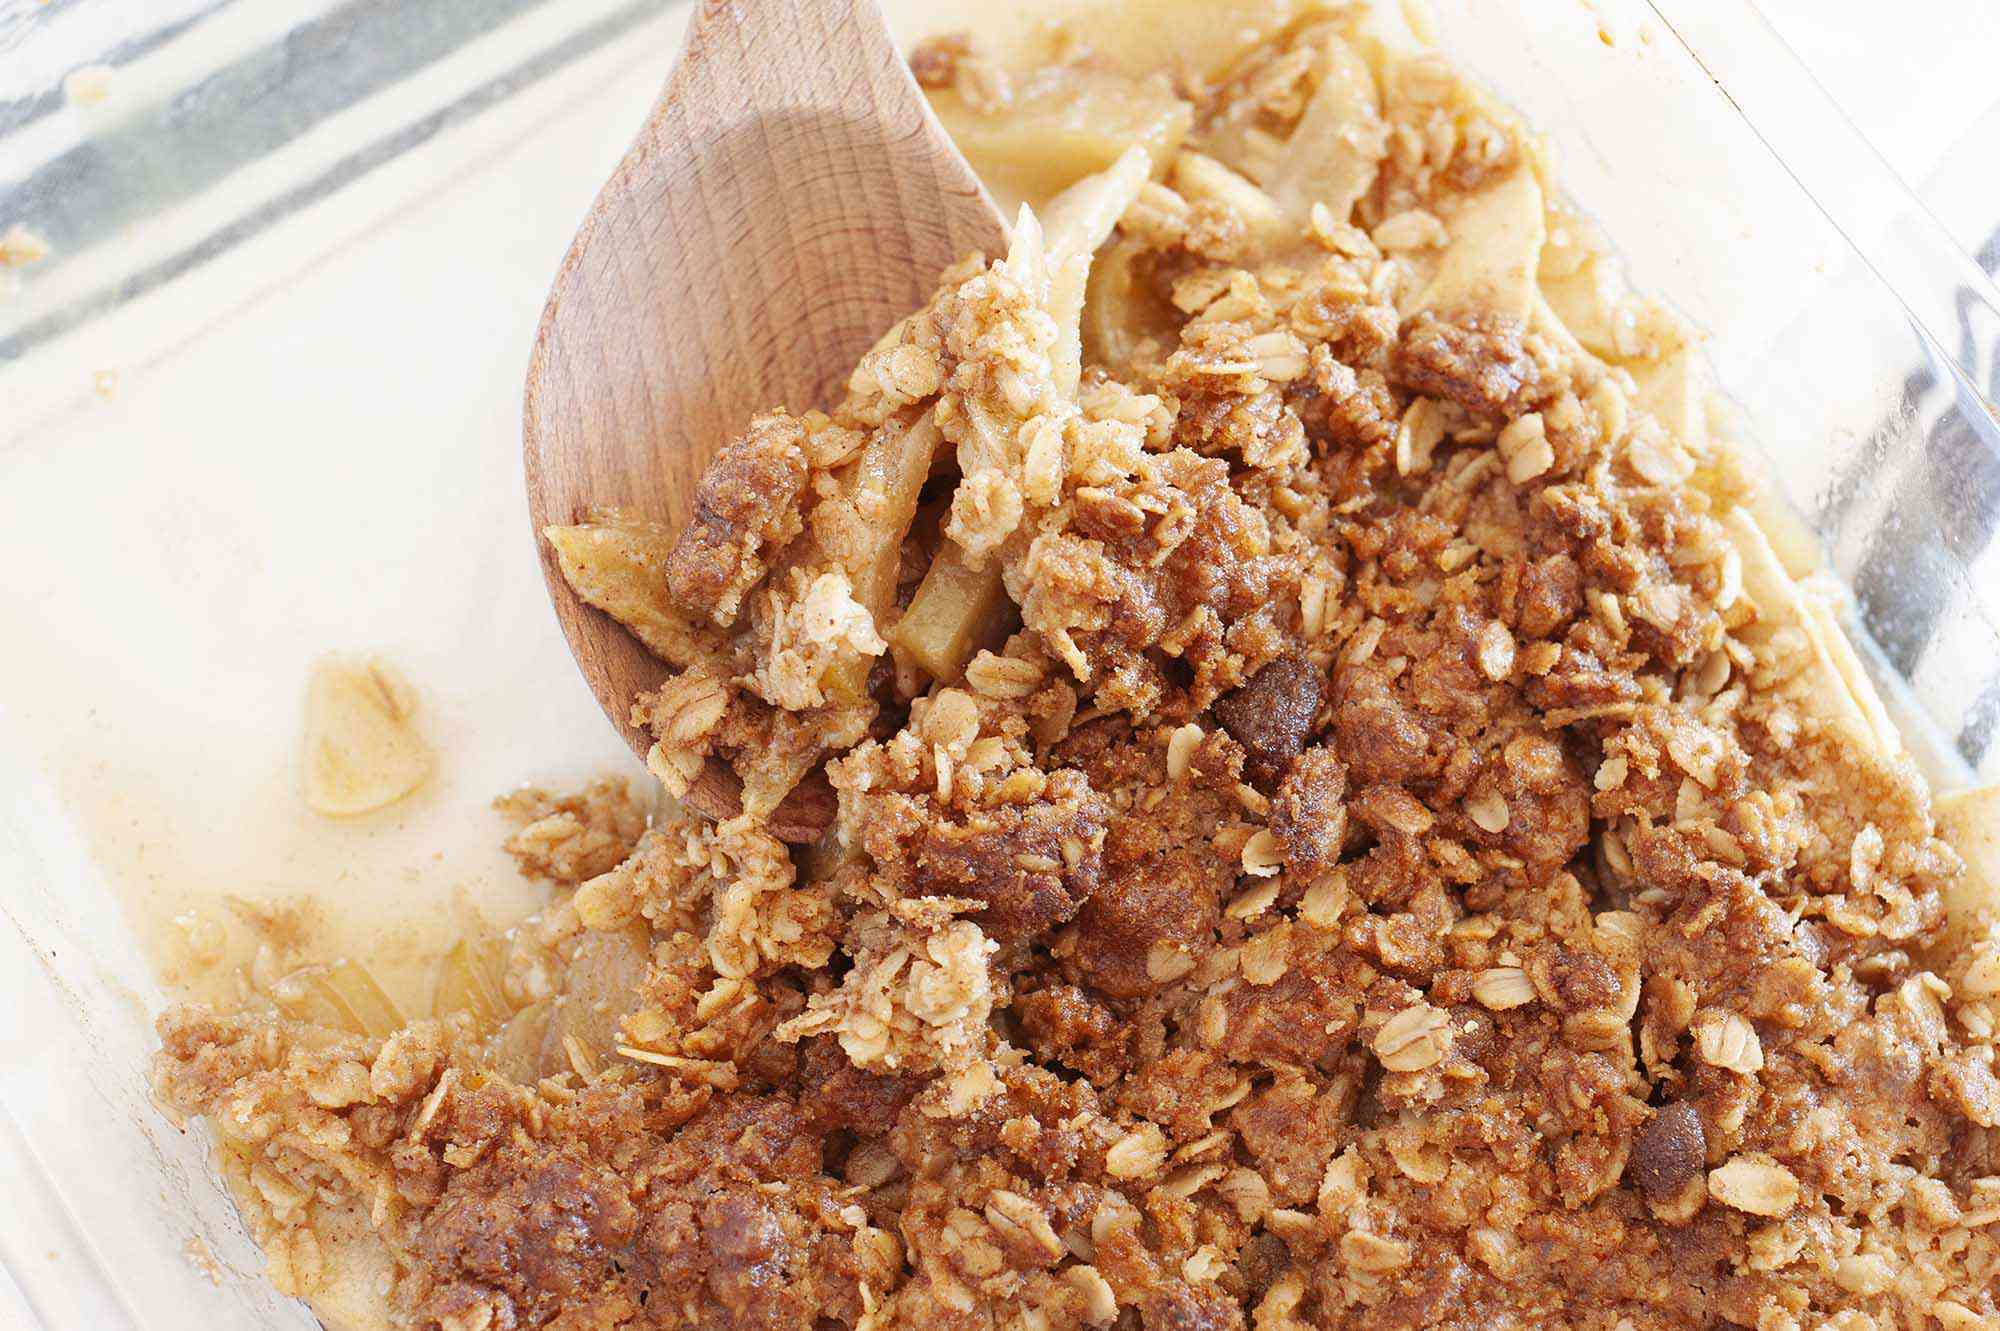 Apple crisp topping stirred with a wooden spoon.